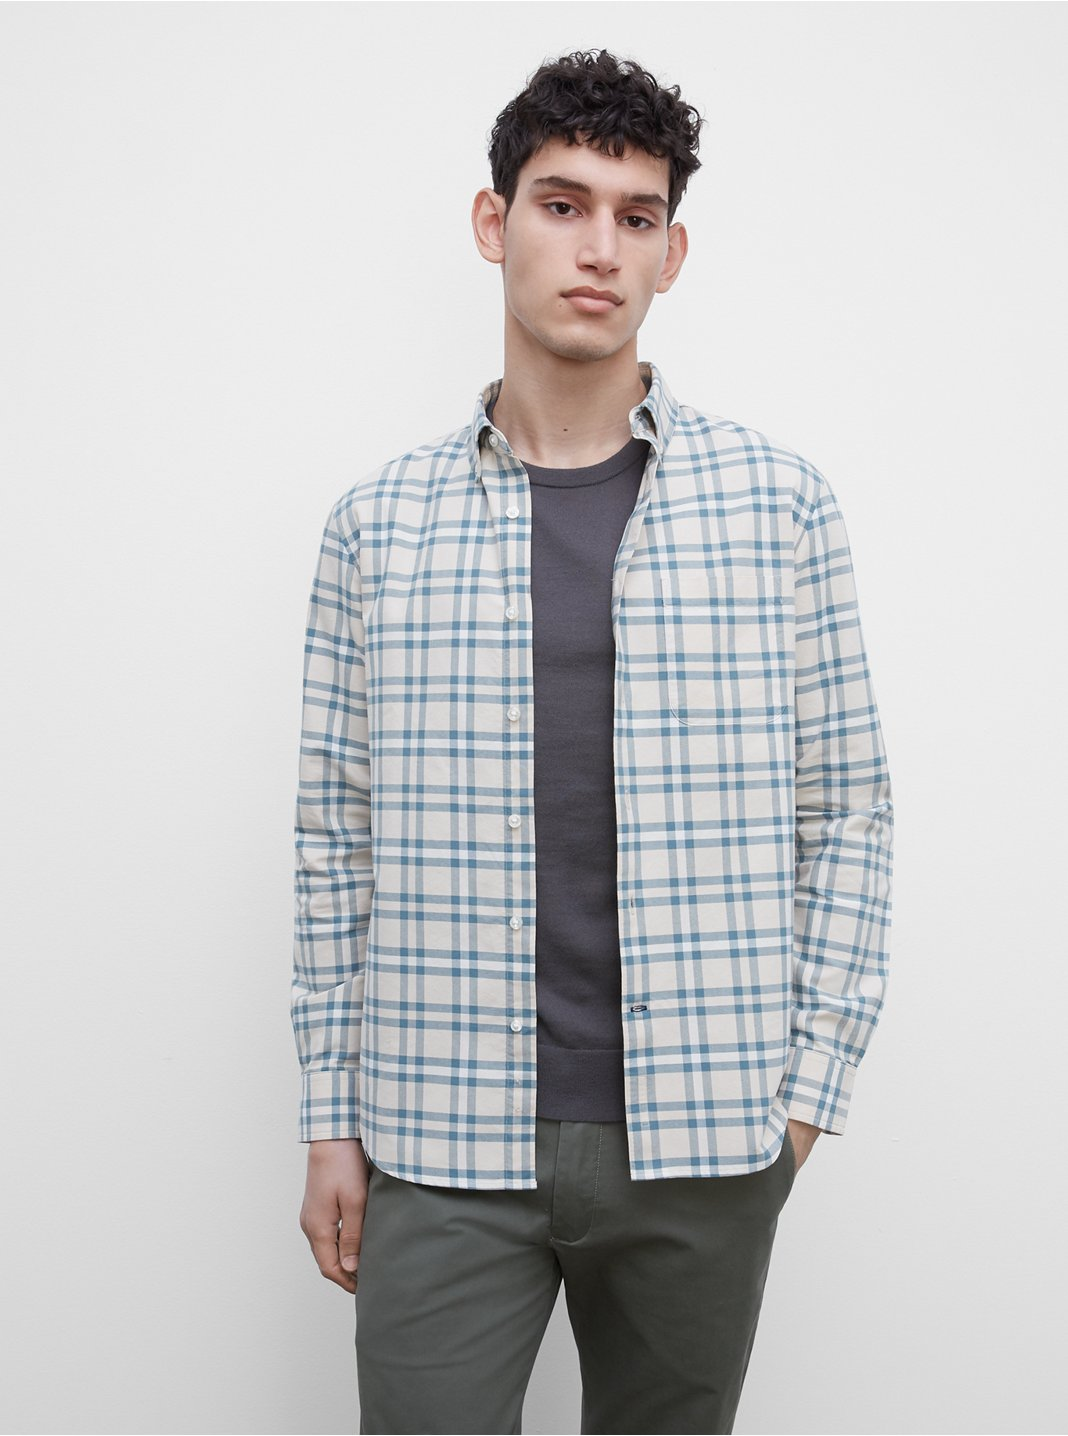 Long Sleeve Oxford Large Plaid Shirt